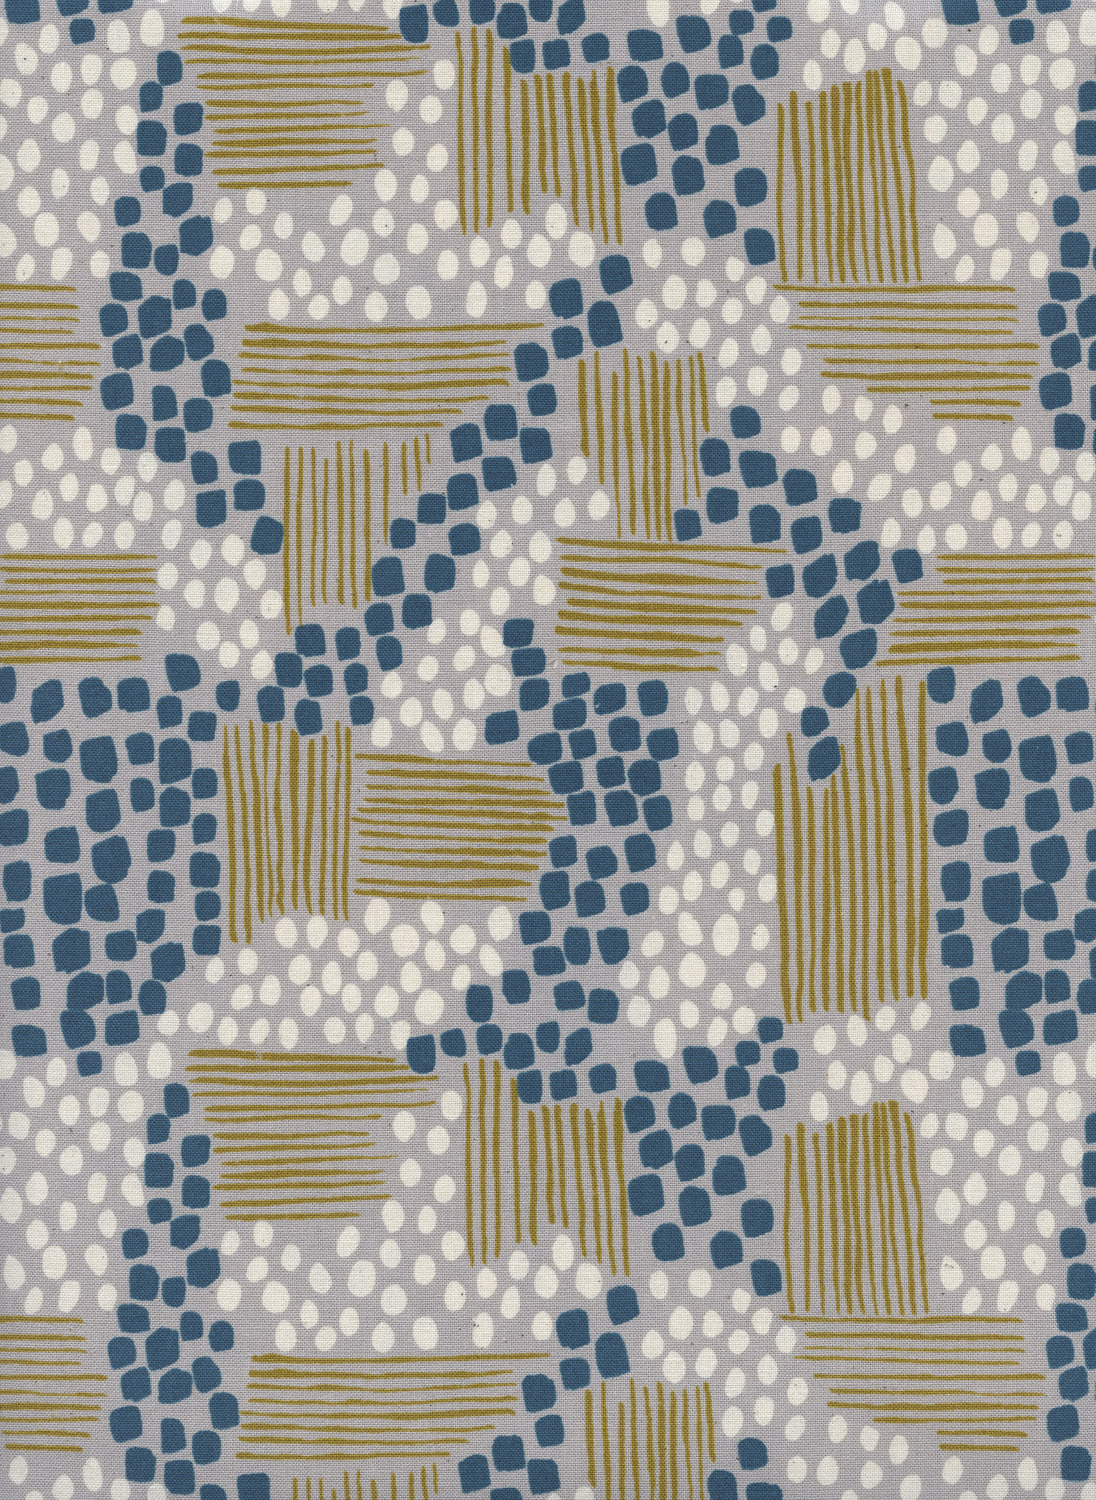 Aeriel View in Sand by Jen Hewitt from the Imagined Landscapes collection for Cotton and Steel #J9010-002